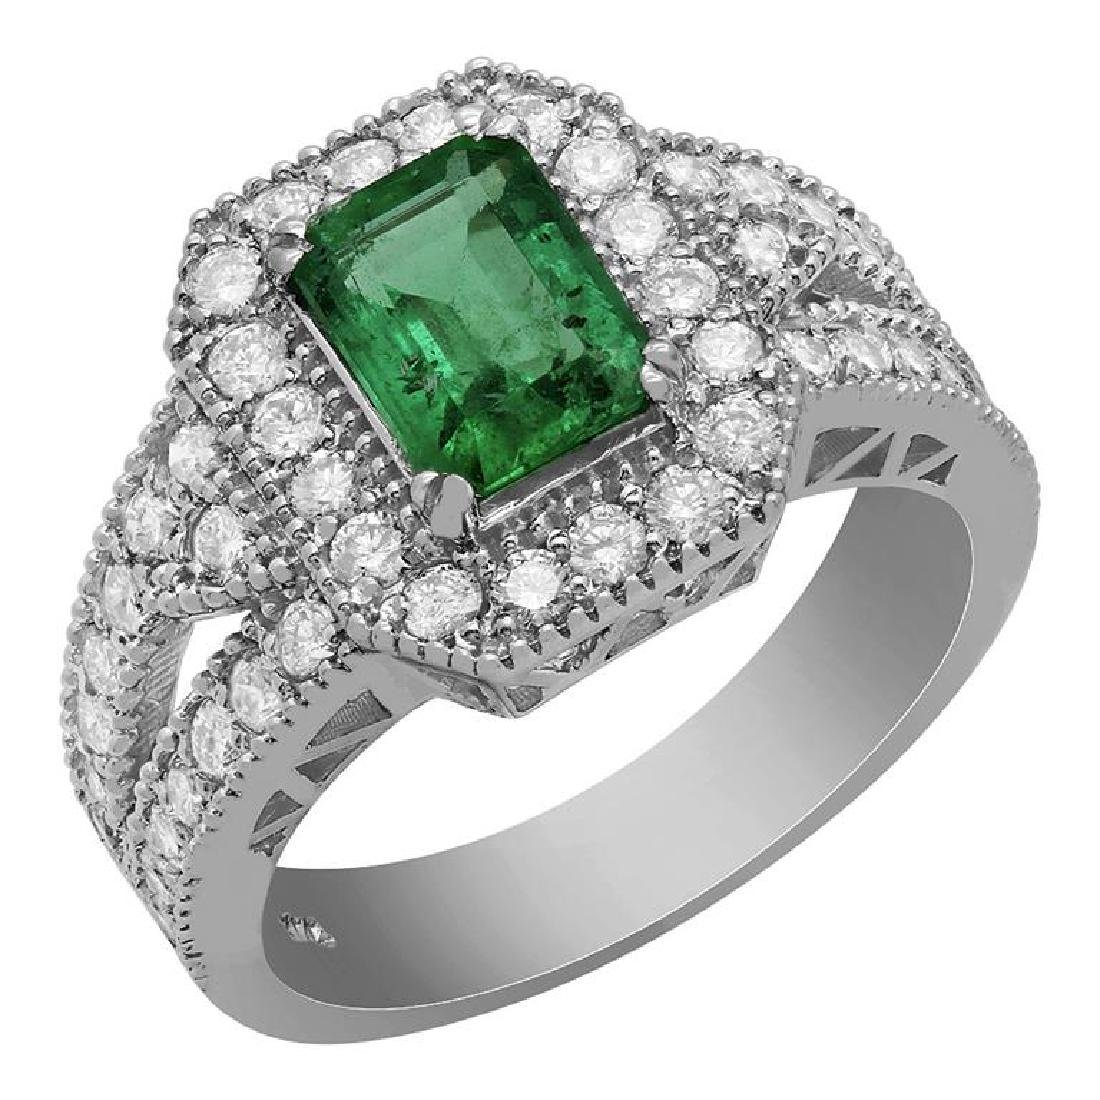 14k White Gold 1.20ct Emerald 1.18ct Diamond Ring